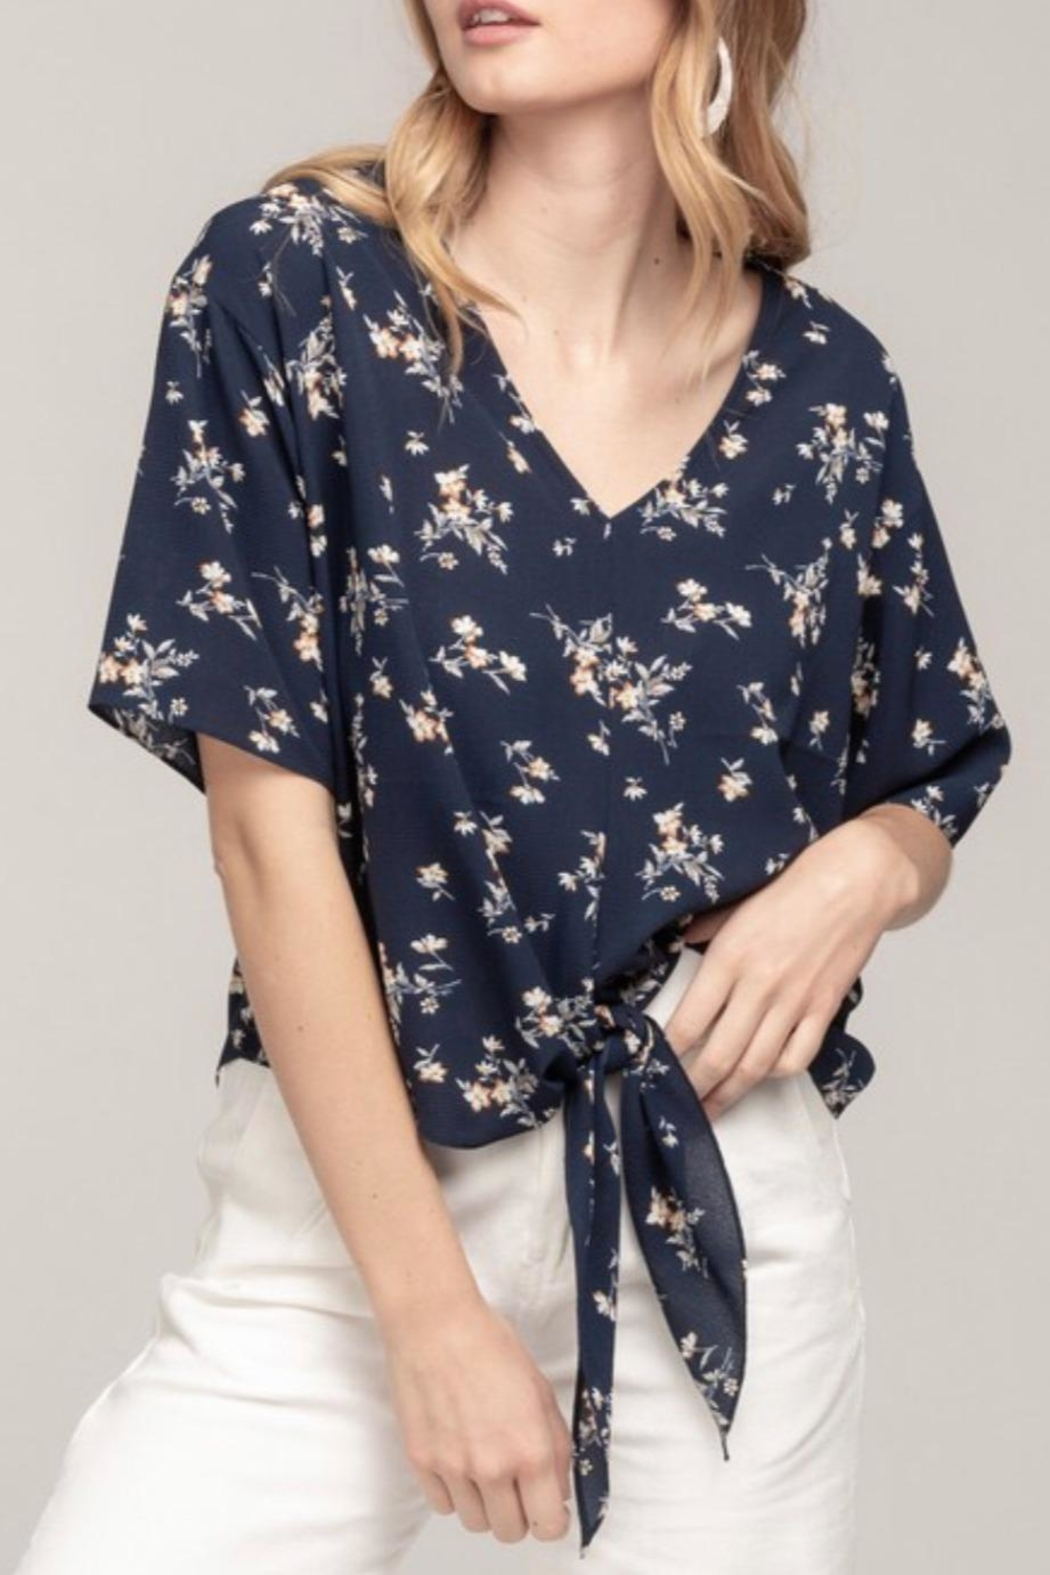 Everly Navy Floral Top - Main Image